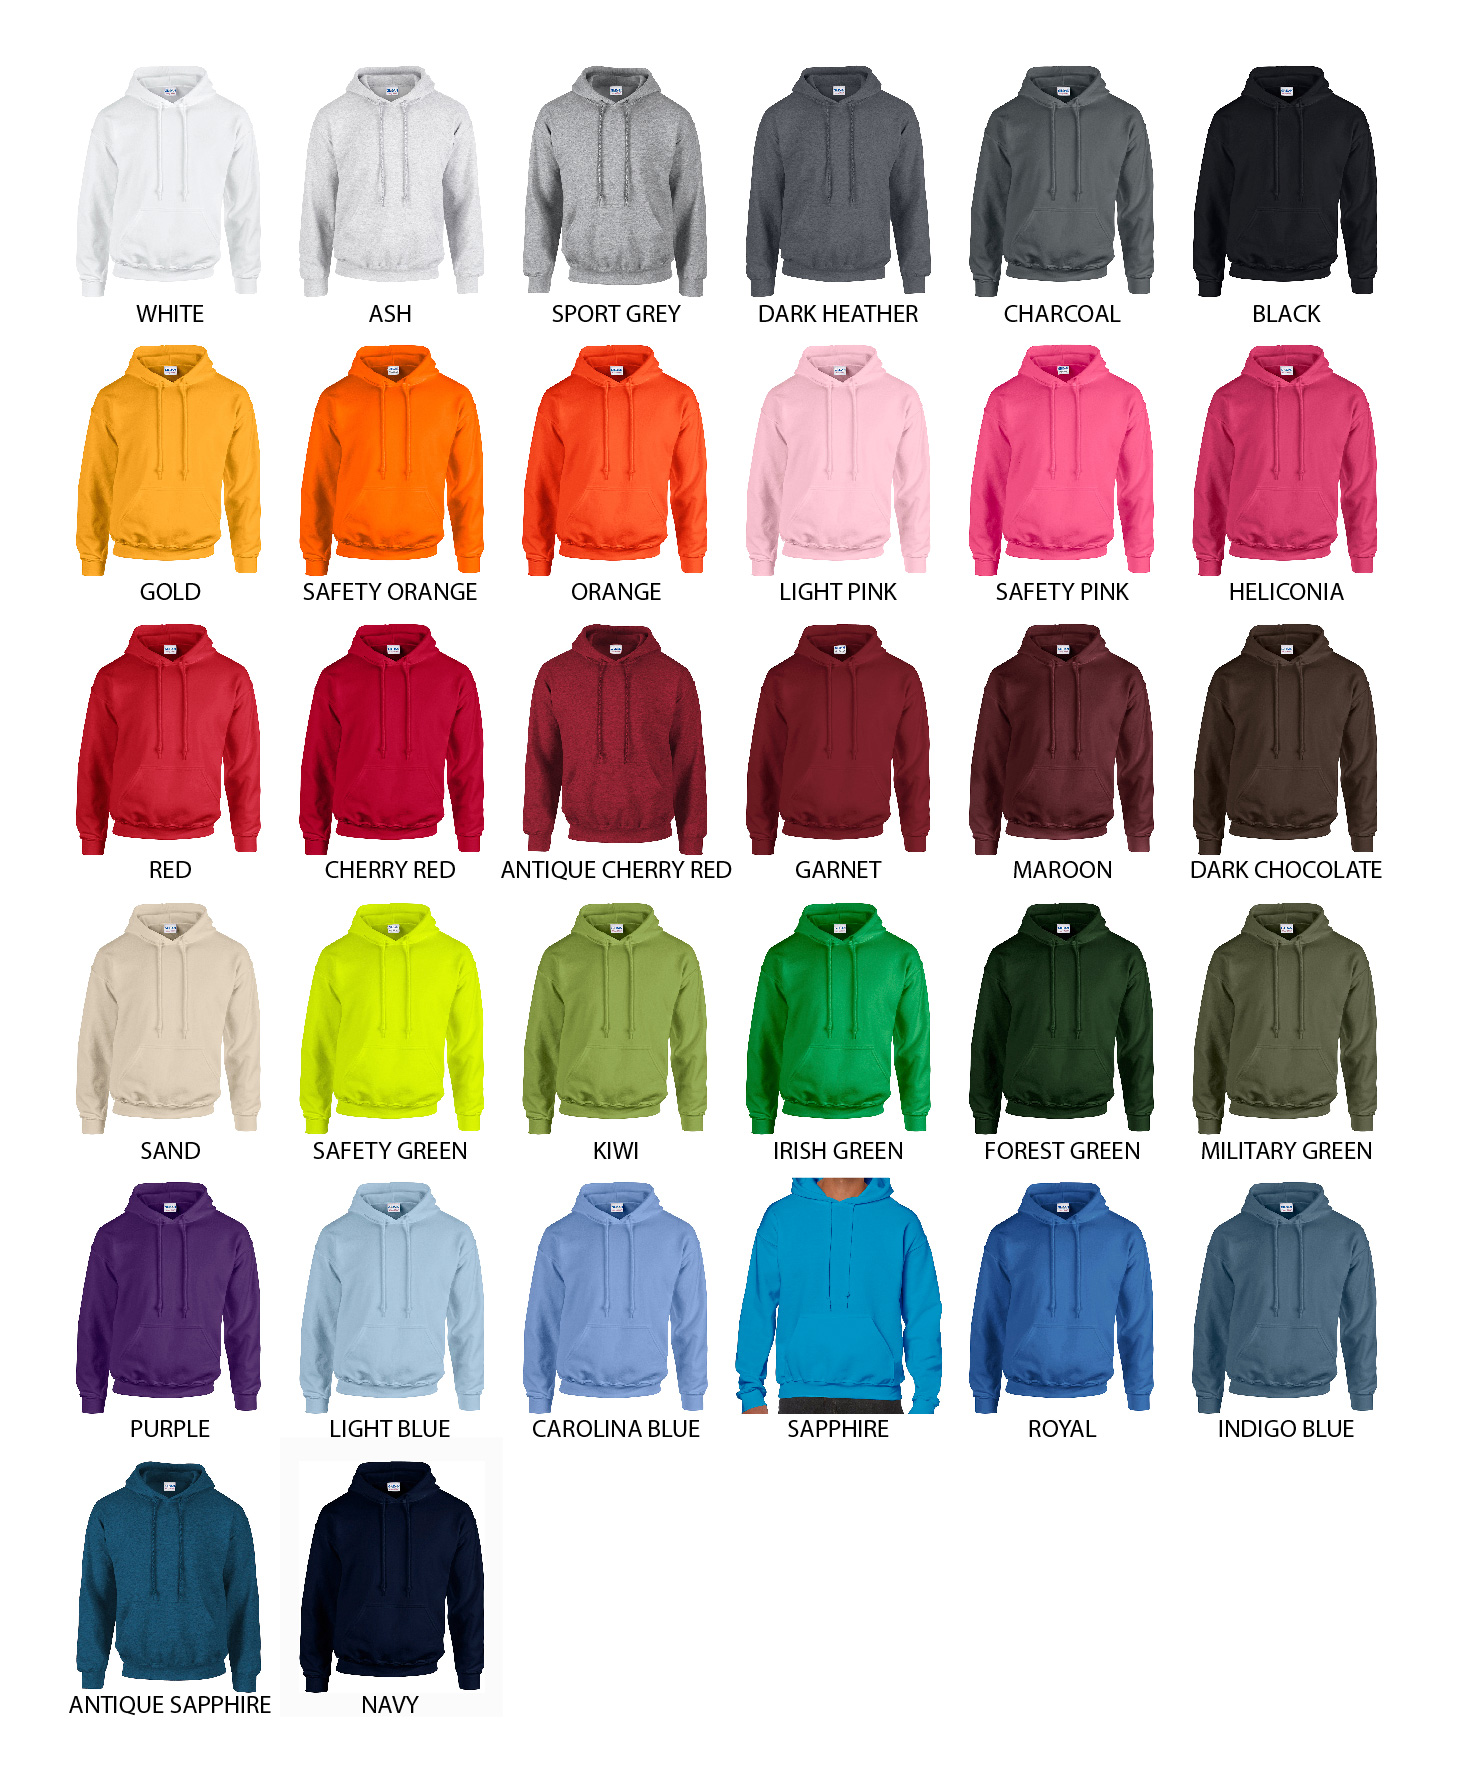 Guide des couleurs de sweat